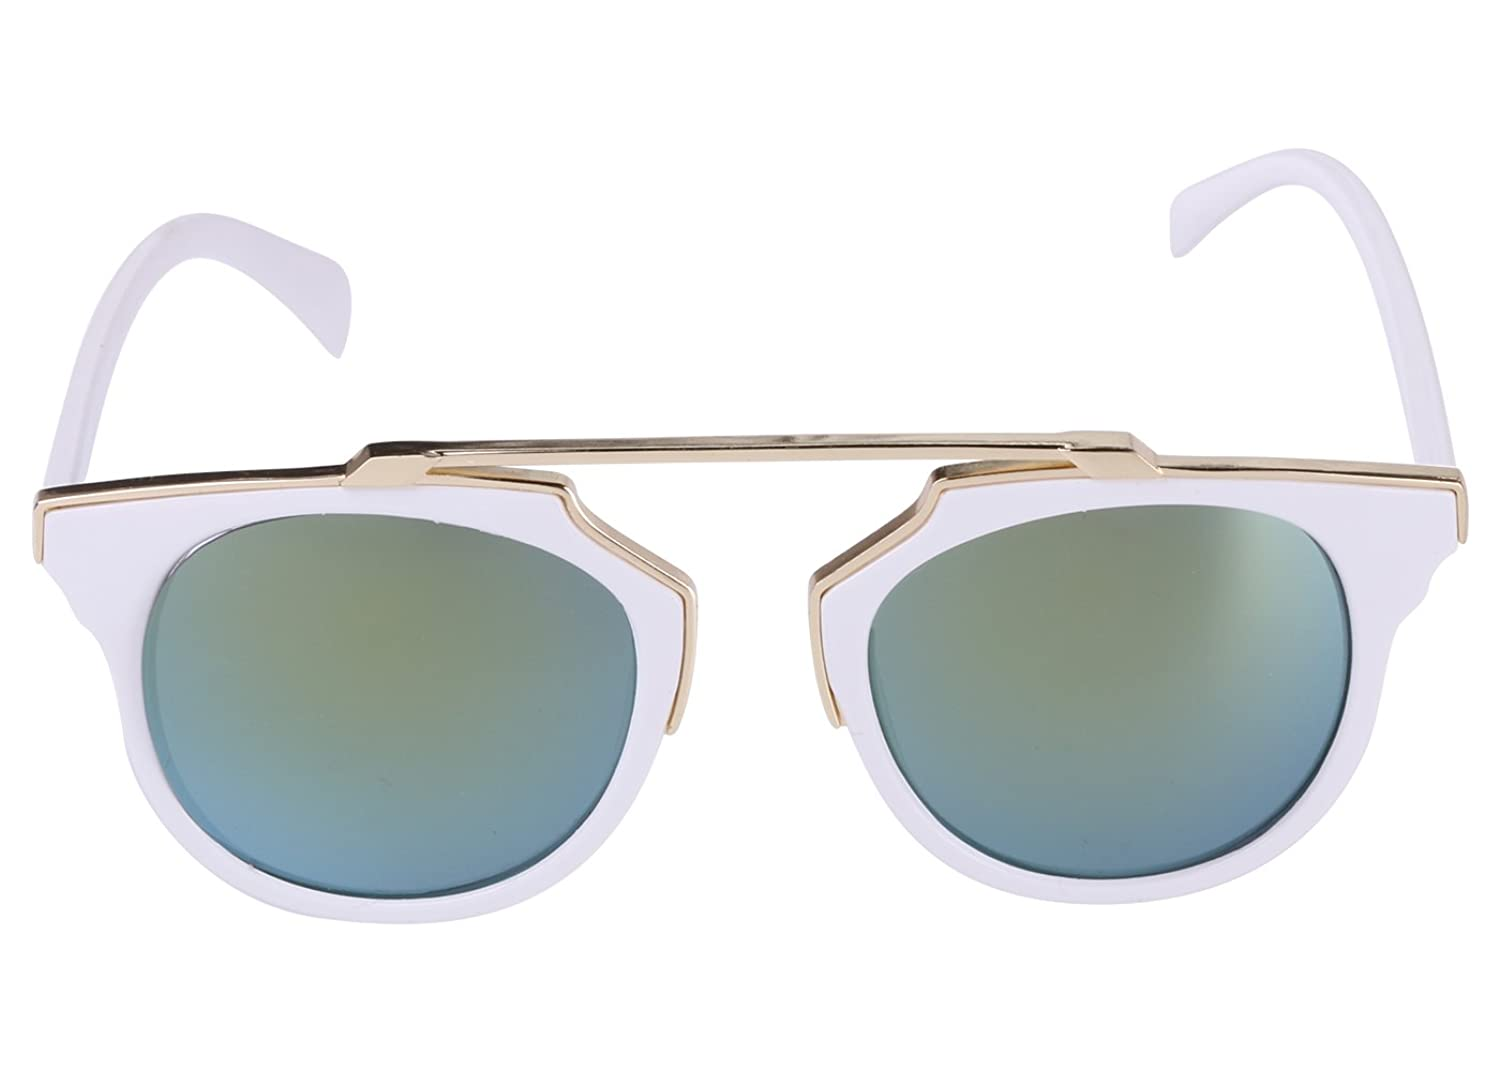 AmorGafas Fashion Sunglasses With UV400 Protected Composite Lens for Women&men